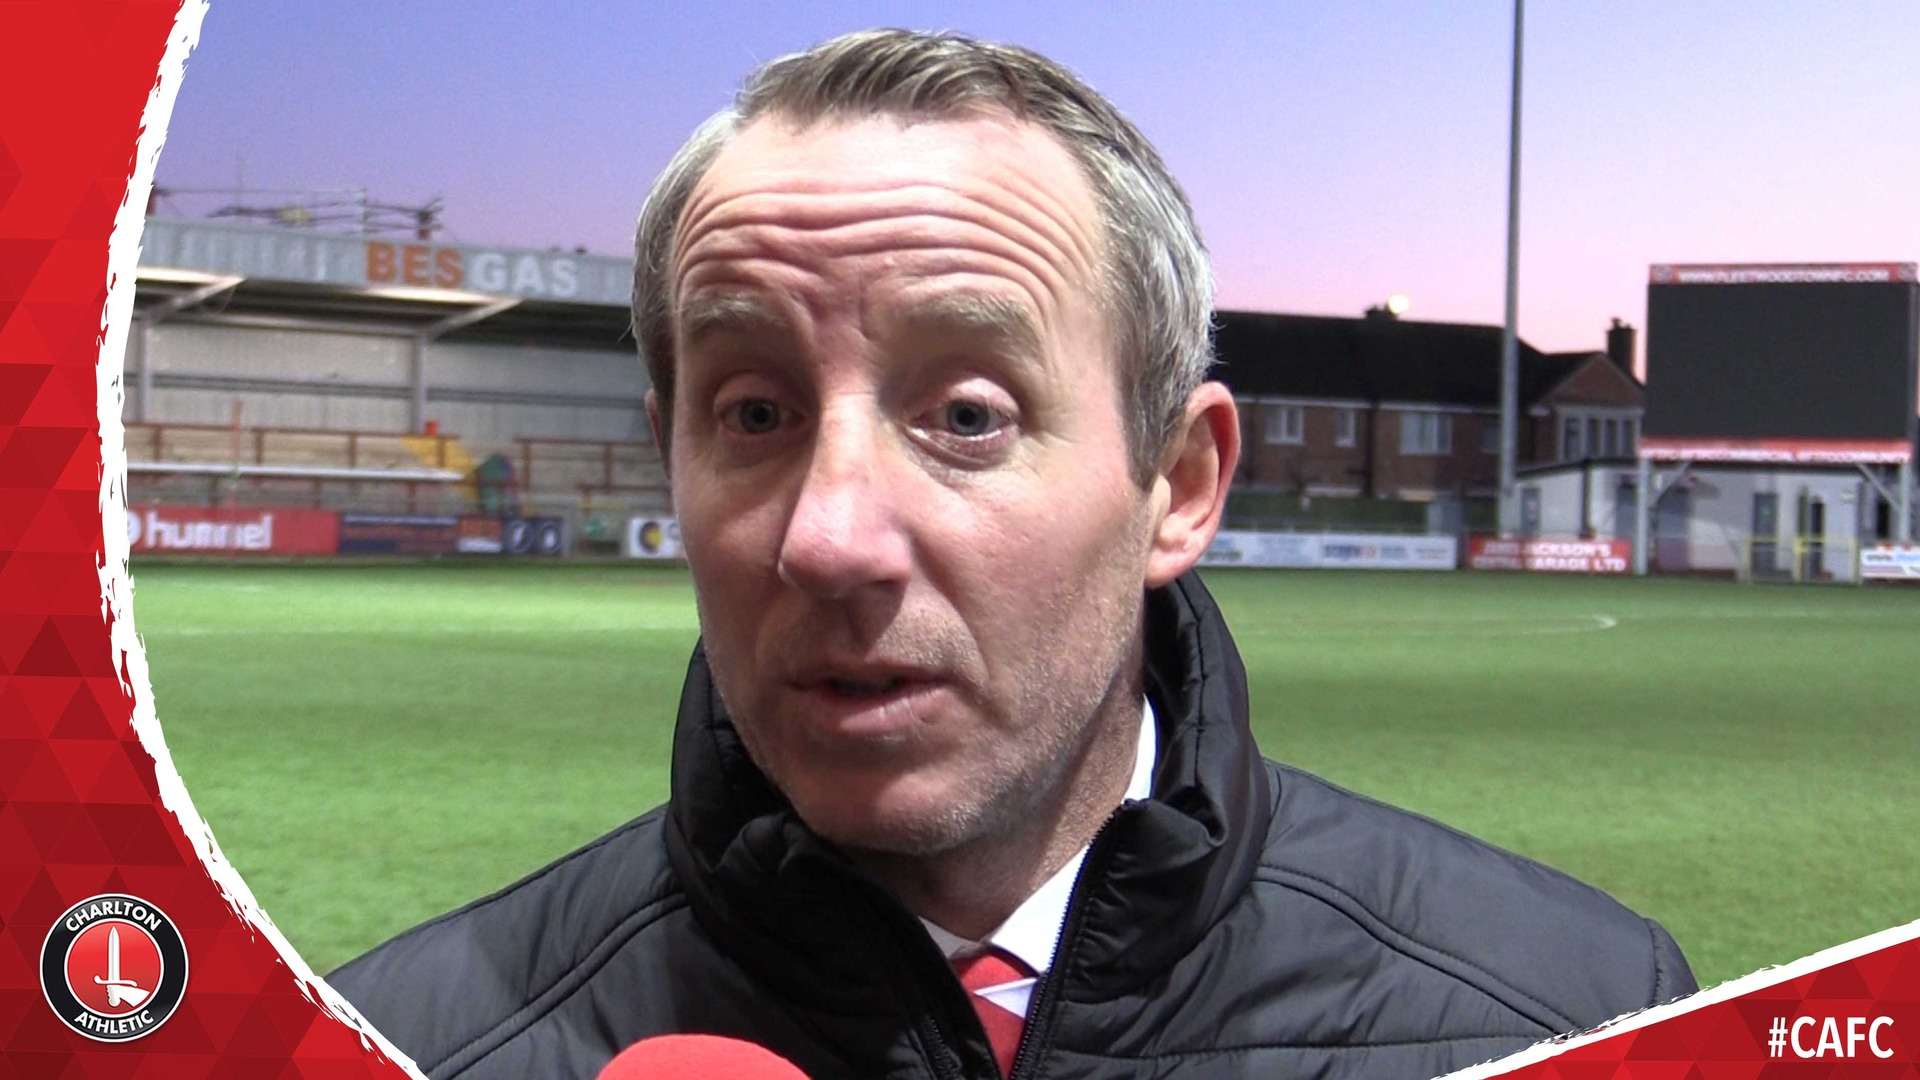 Lee Bowyer on Charlton's 1-0 defeat at Fleetwood Town (February 2019)